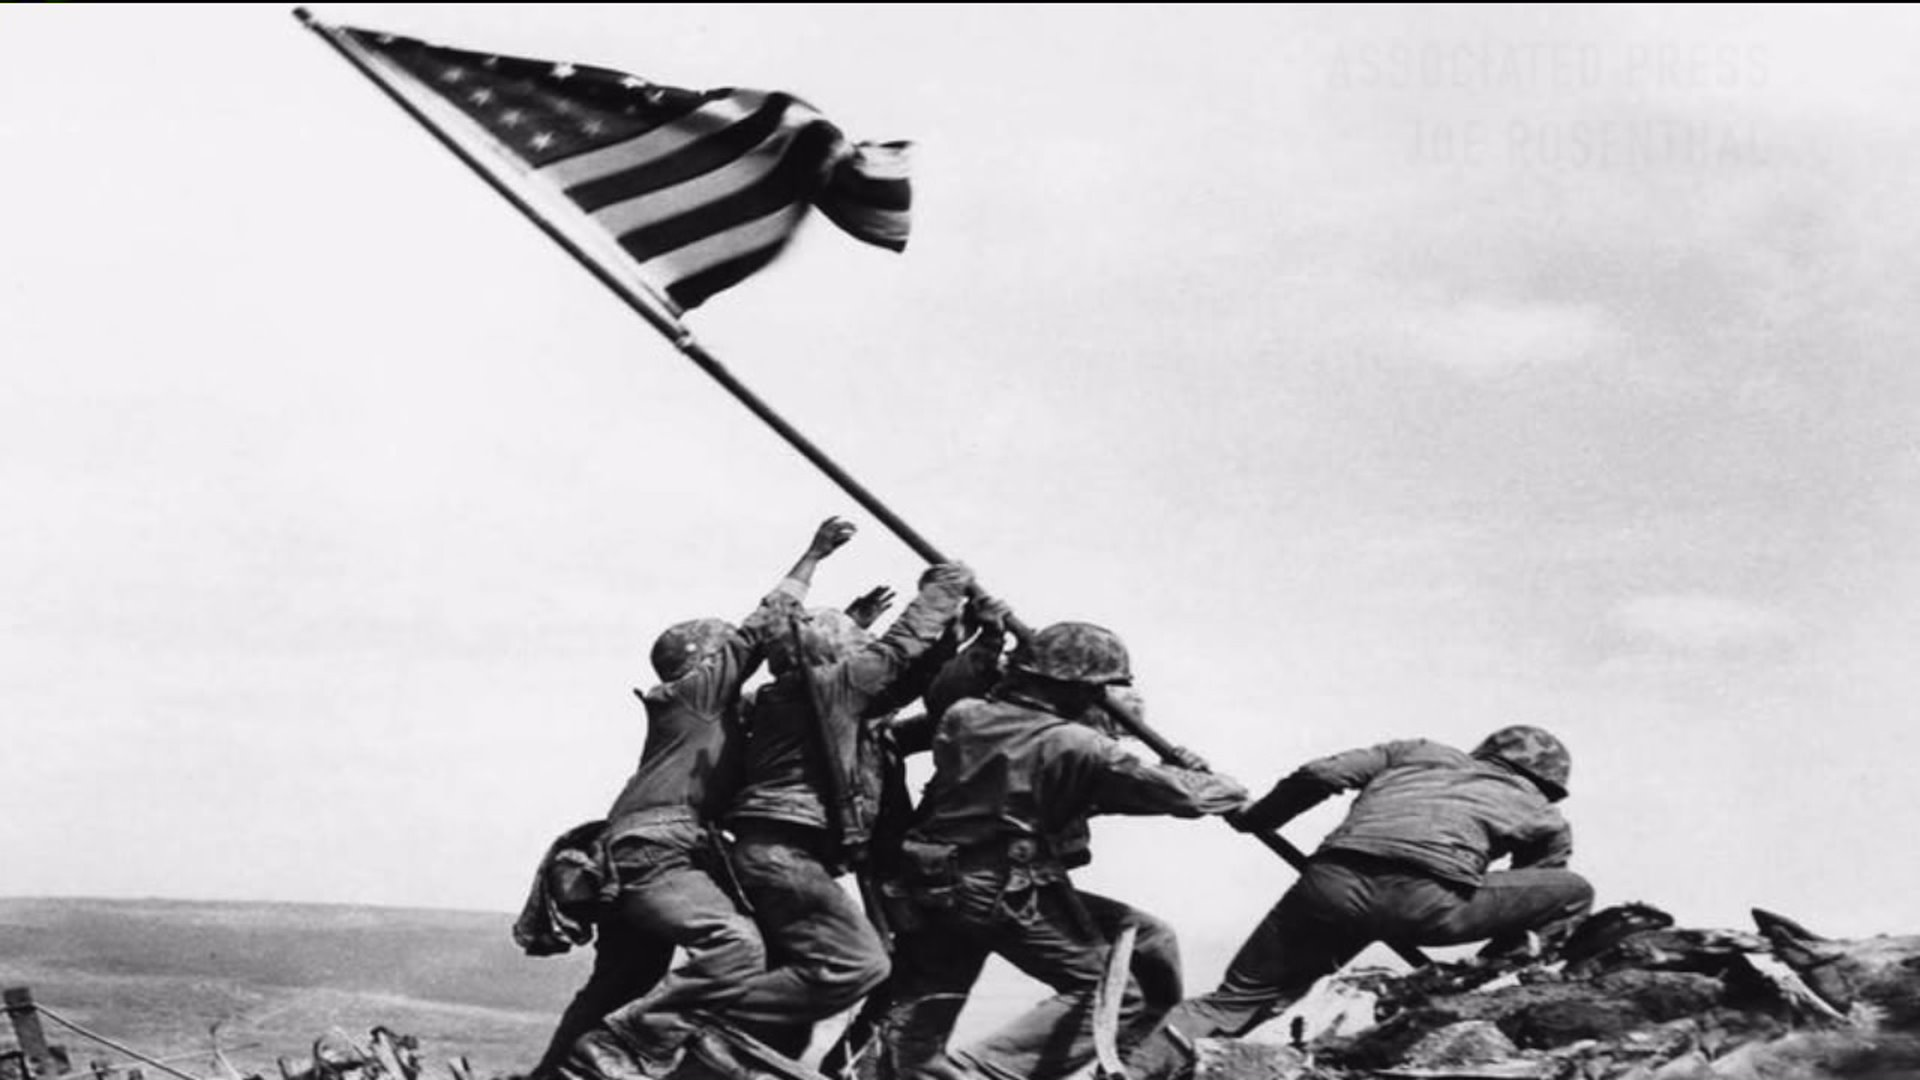 Colorado World War II vet in famous Iwo Jima flag-raising photo shares story | FOX31 Denver